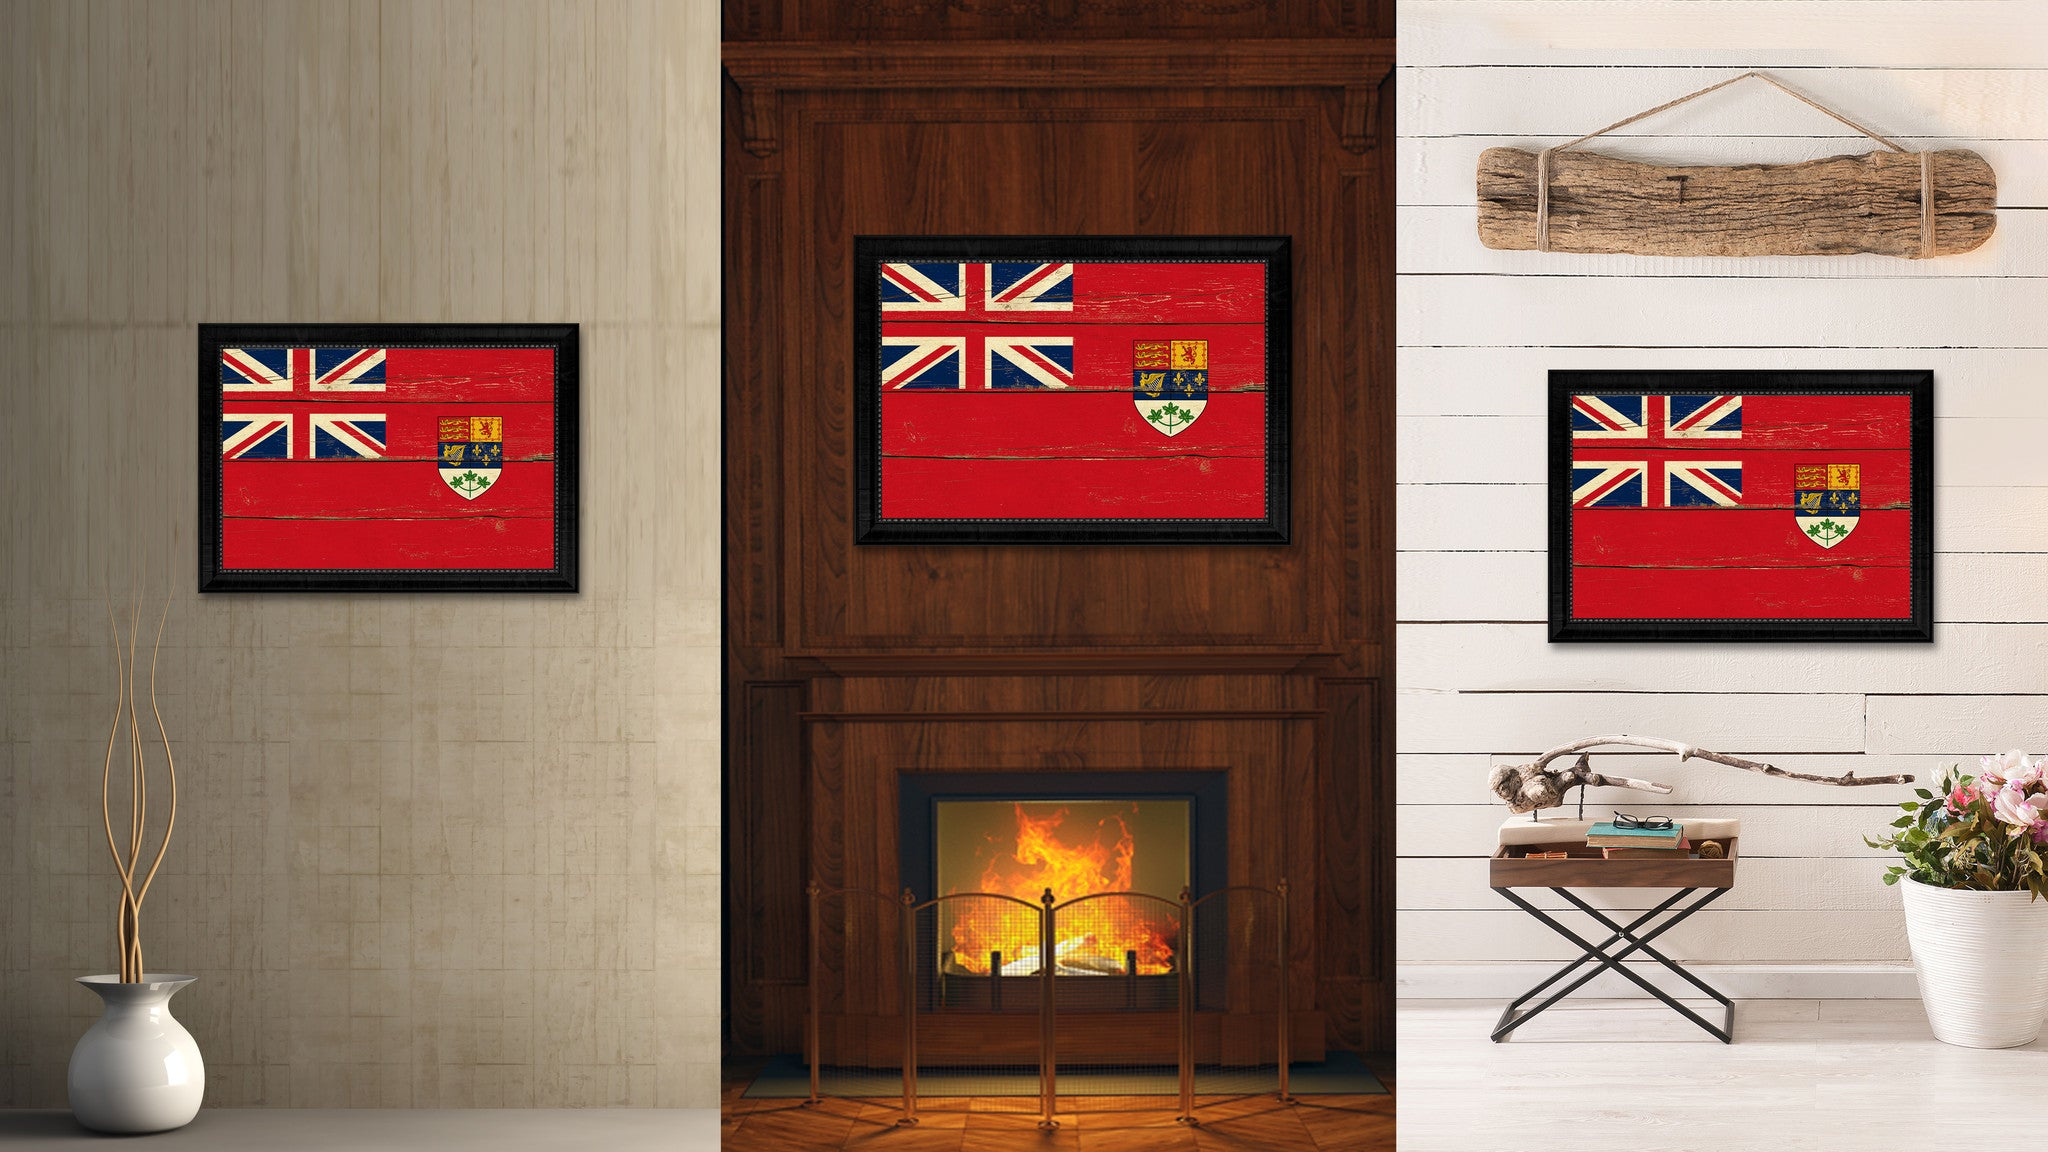 Canadian Red Ensign City Canada Country Vintage Flag Home Decor Office Wall Art Livingroom Gifts